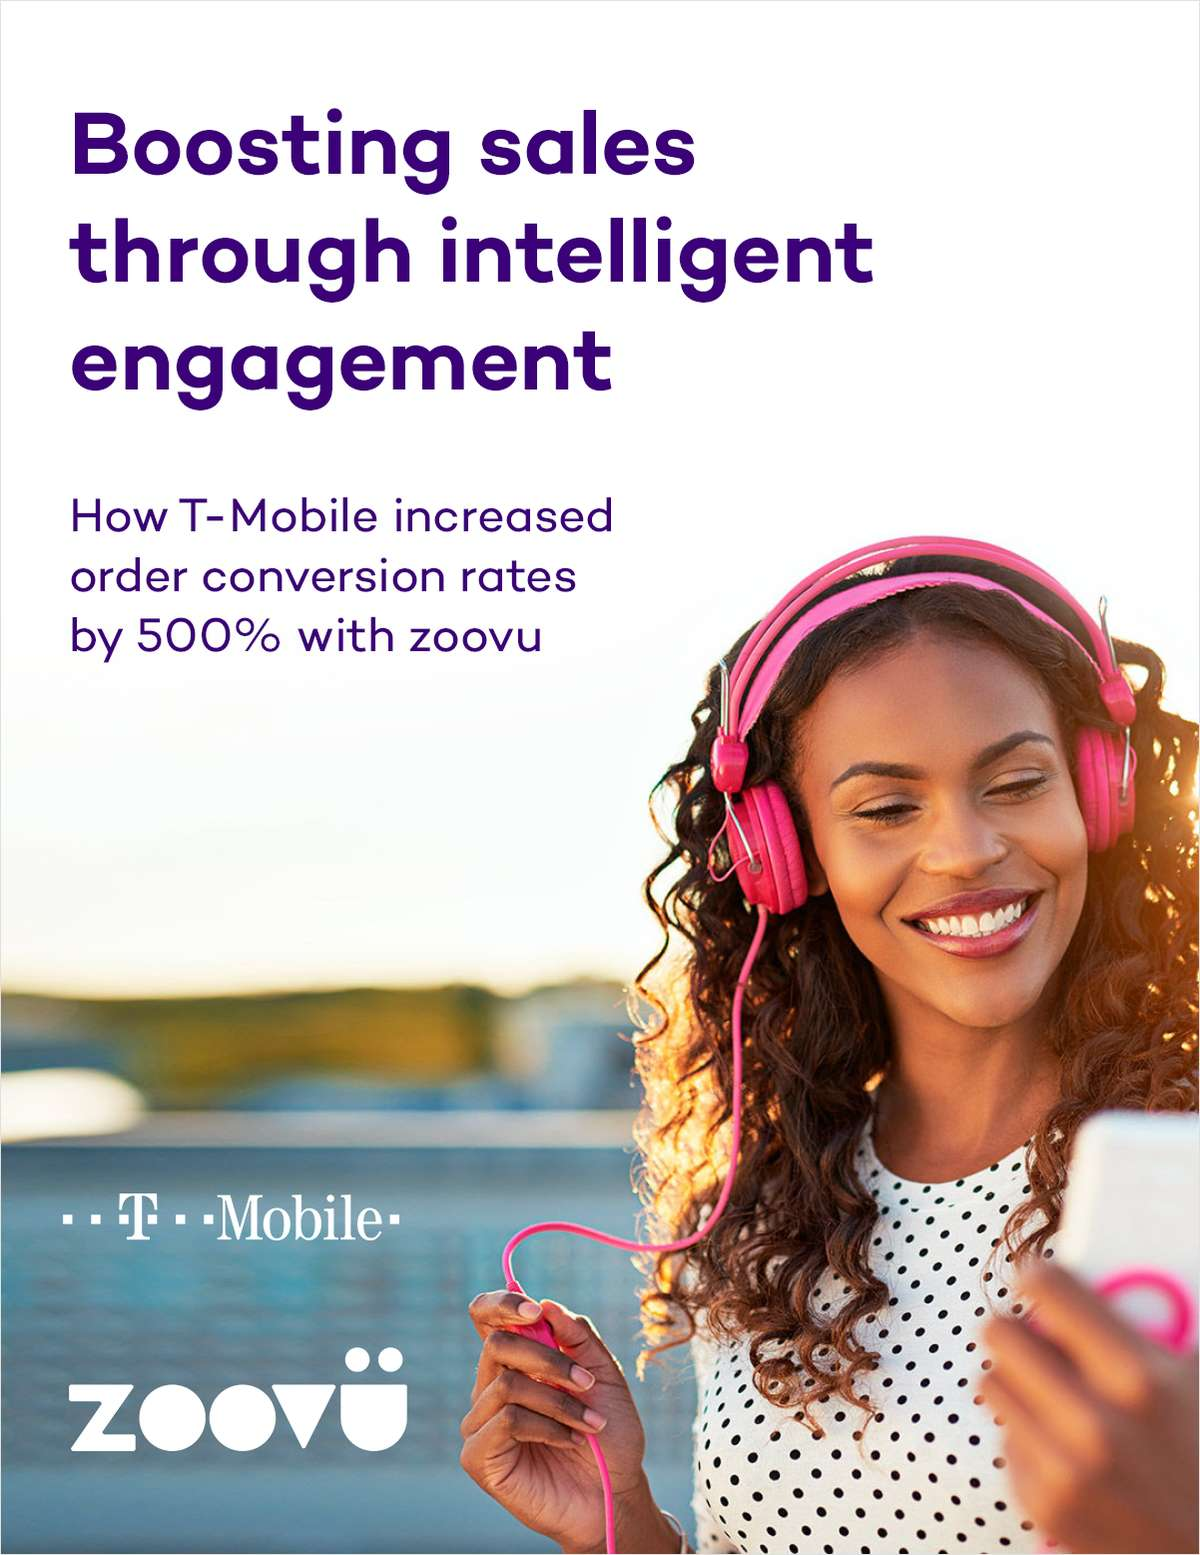 T-mobile case study: Boosting sales through intelligent engagement